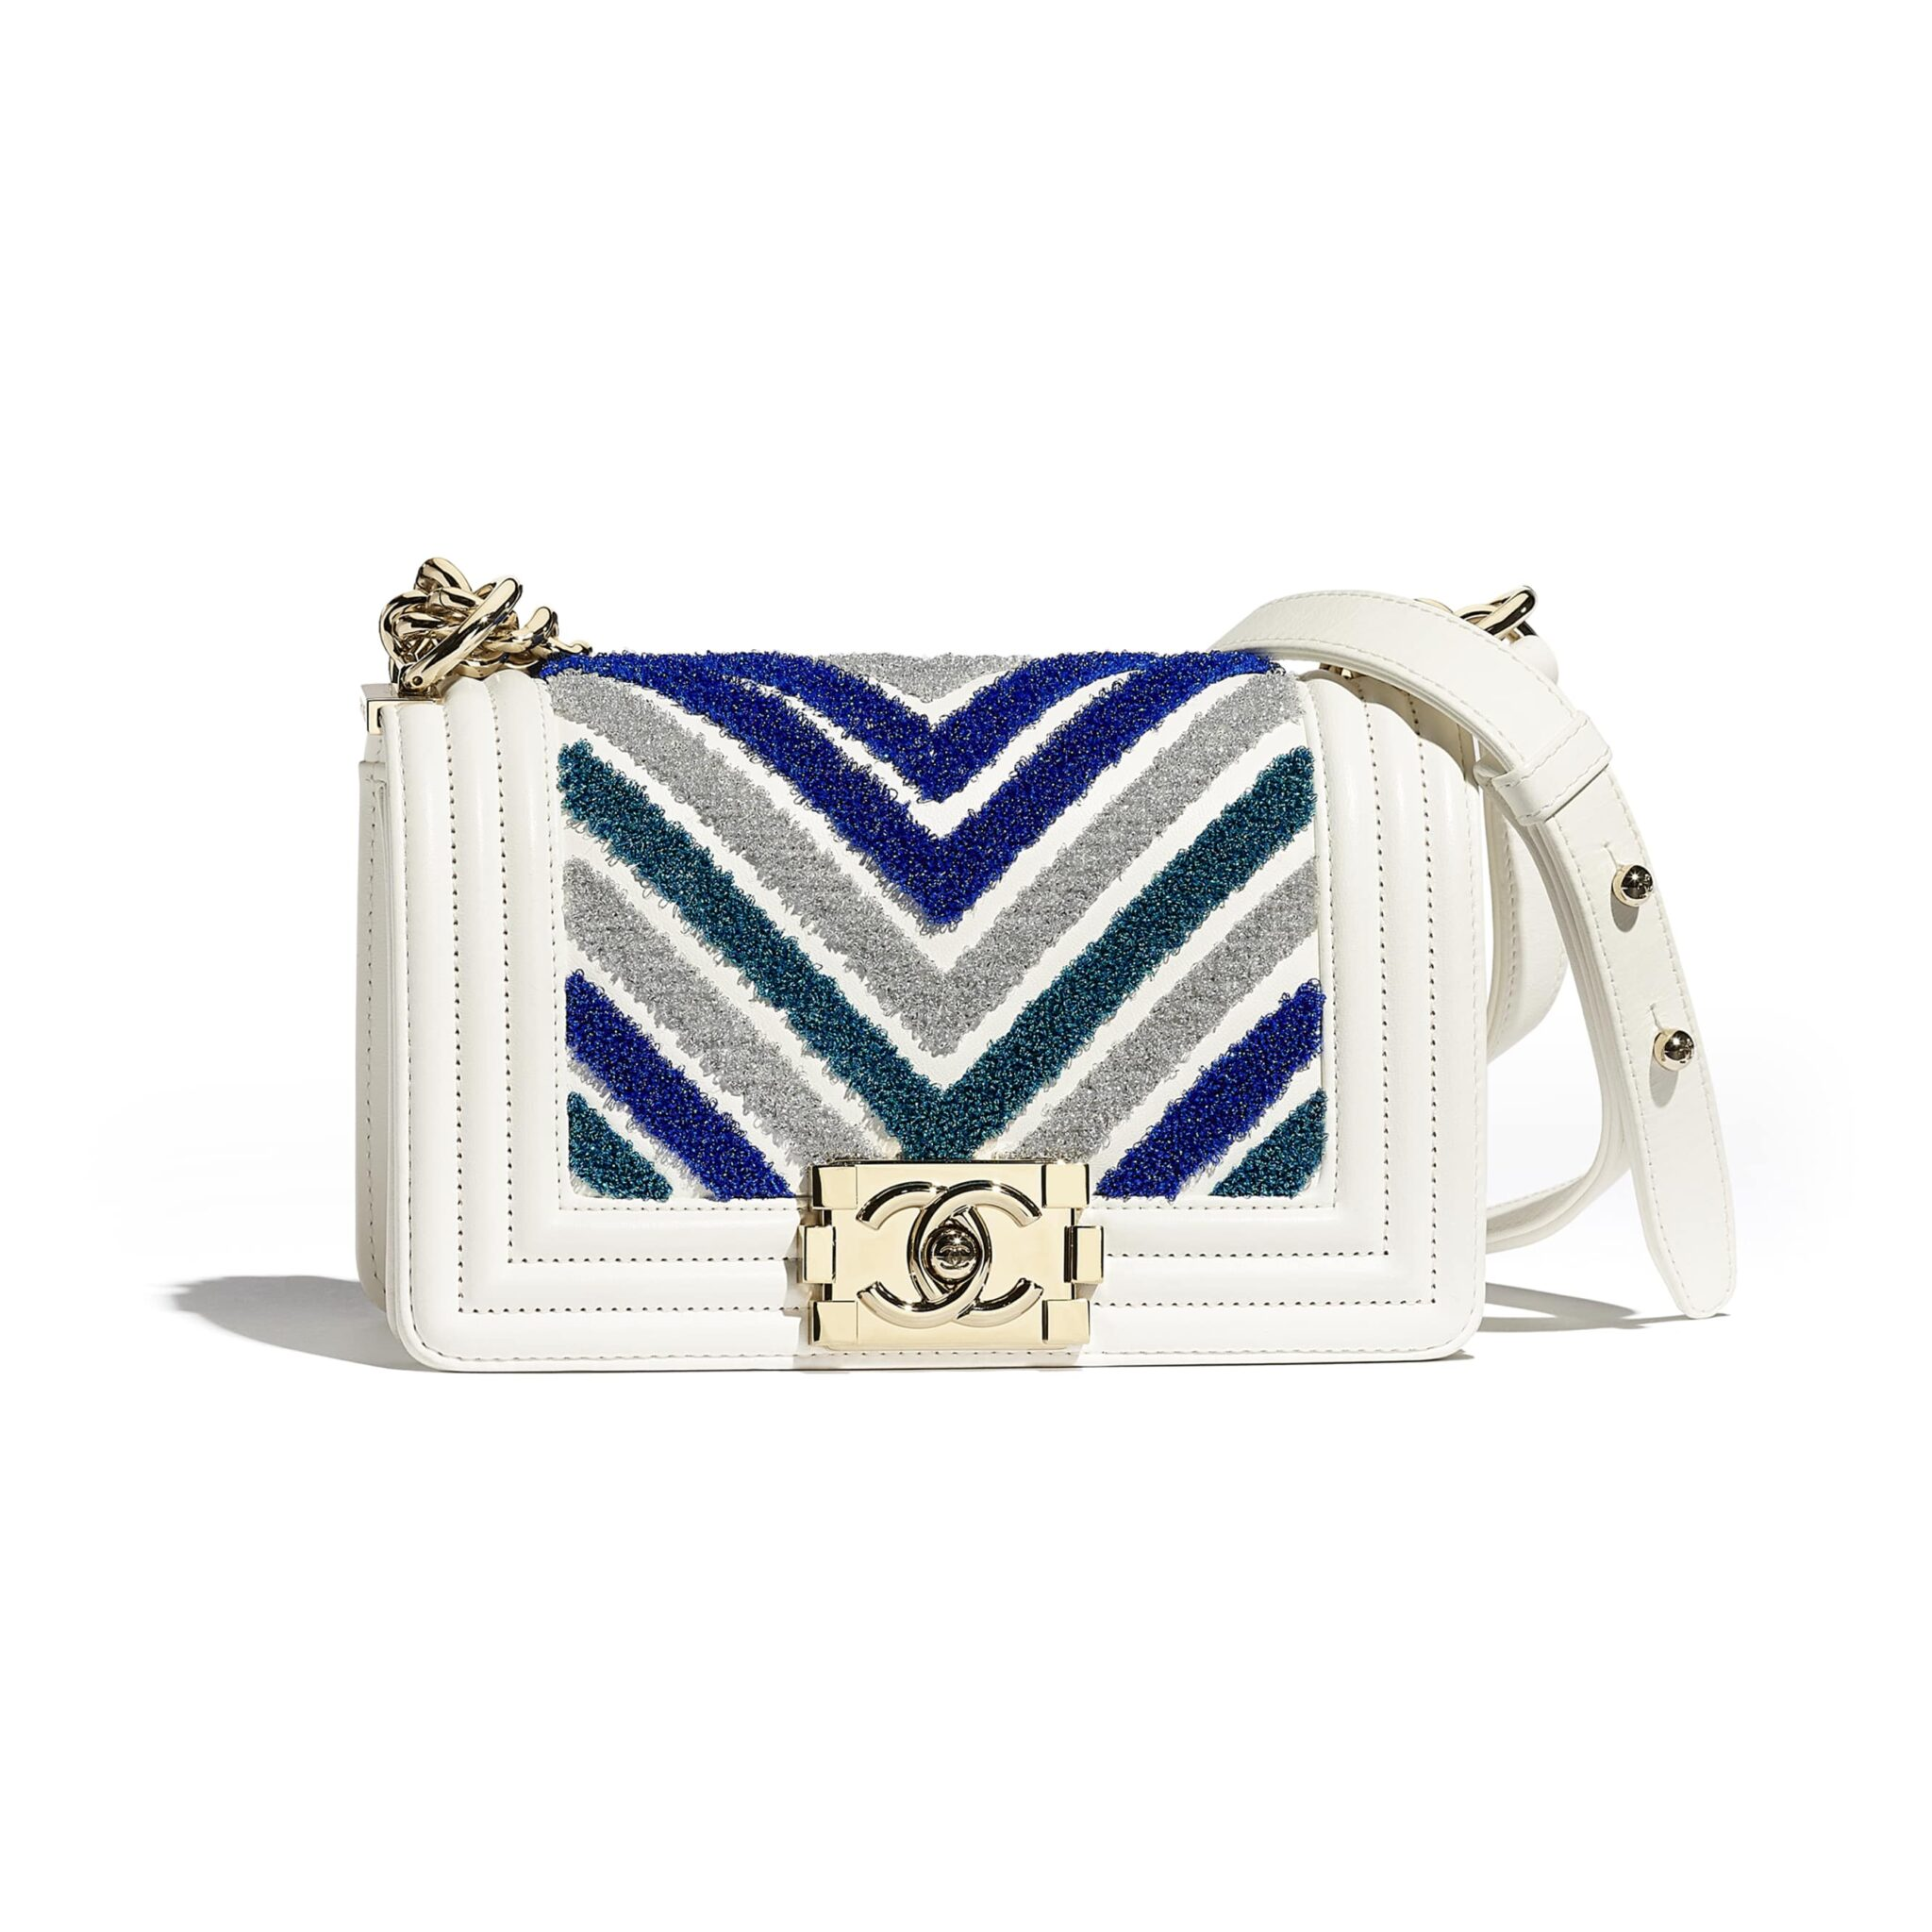 f4346b368802 Chanel Blue/White Embroidered Calfskin/Lurex Boy Chanel Small Flap Bag